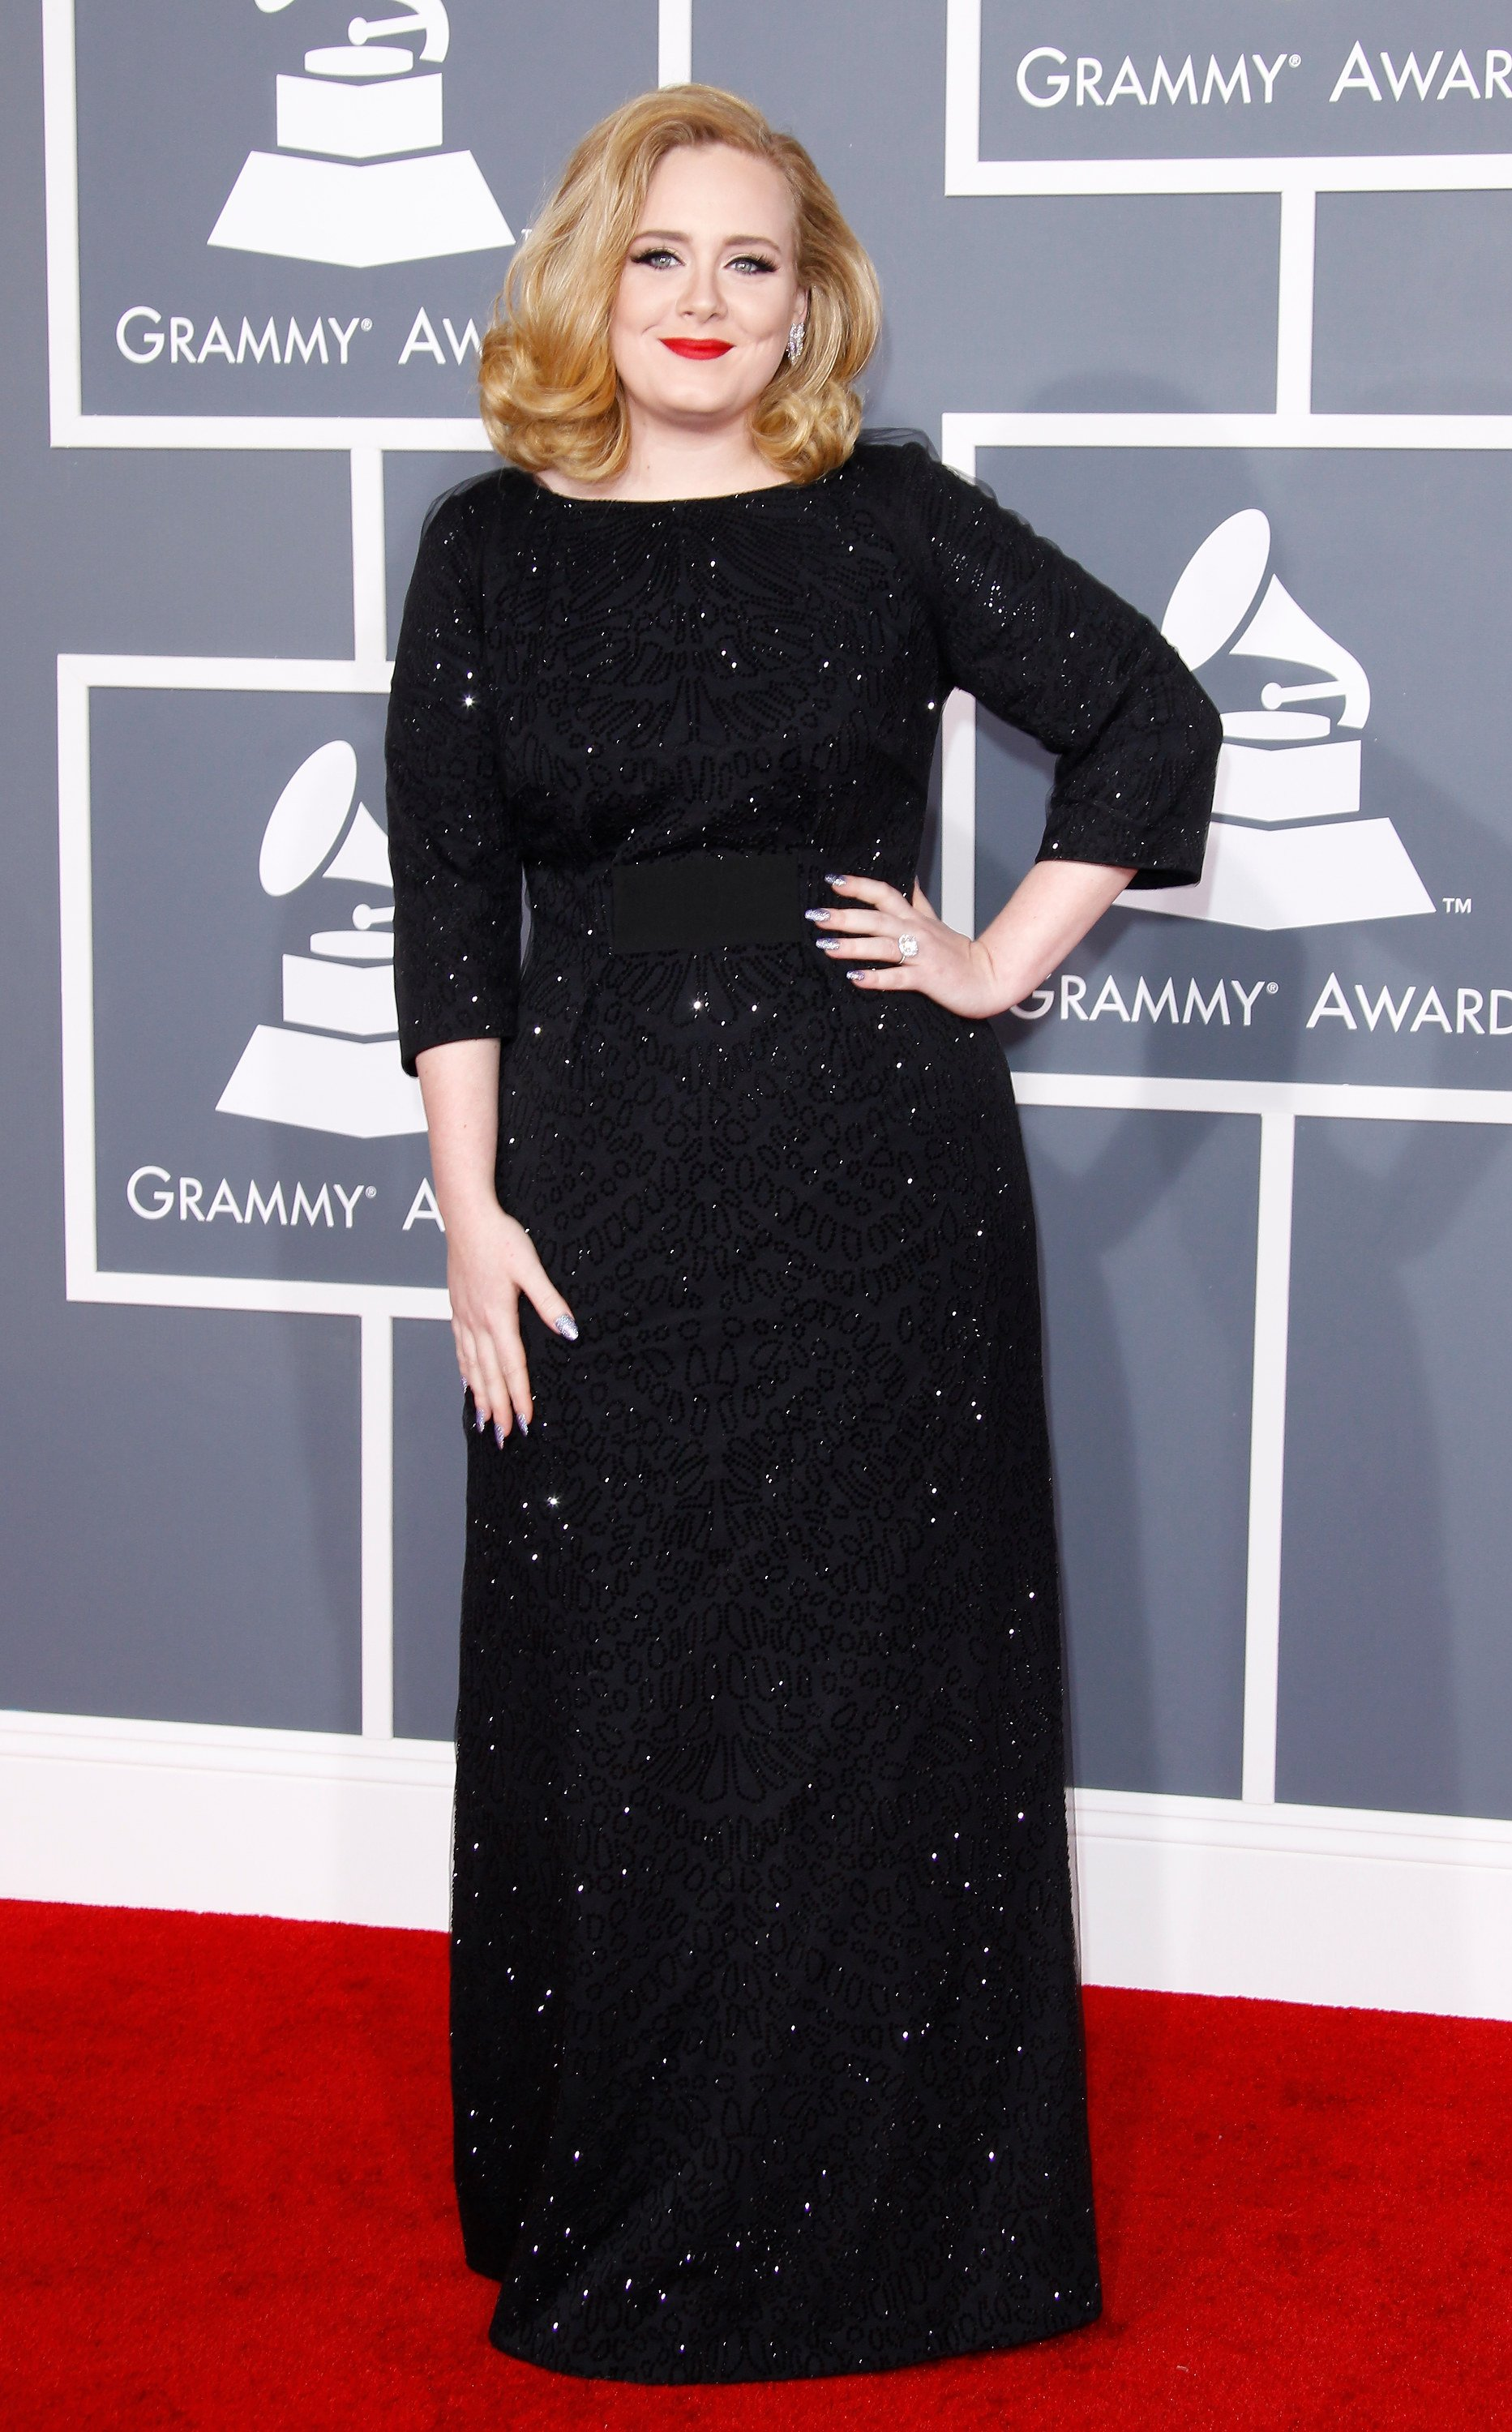 Image Credit: Getty Images / Adele at the Grammy Awards.